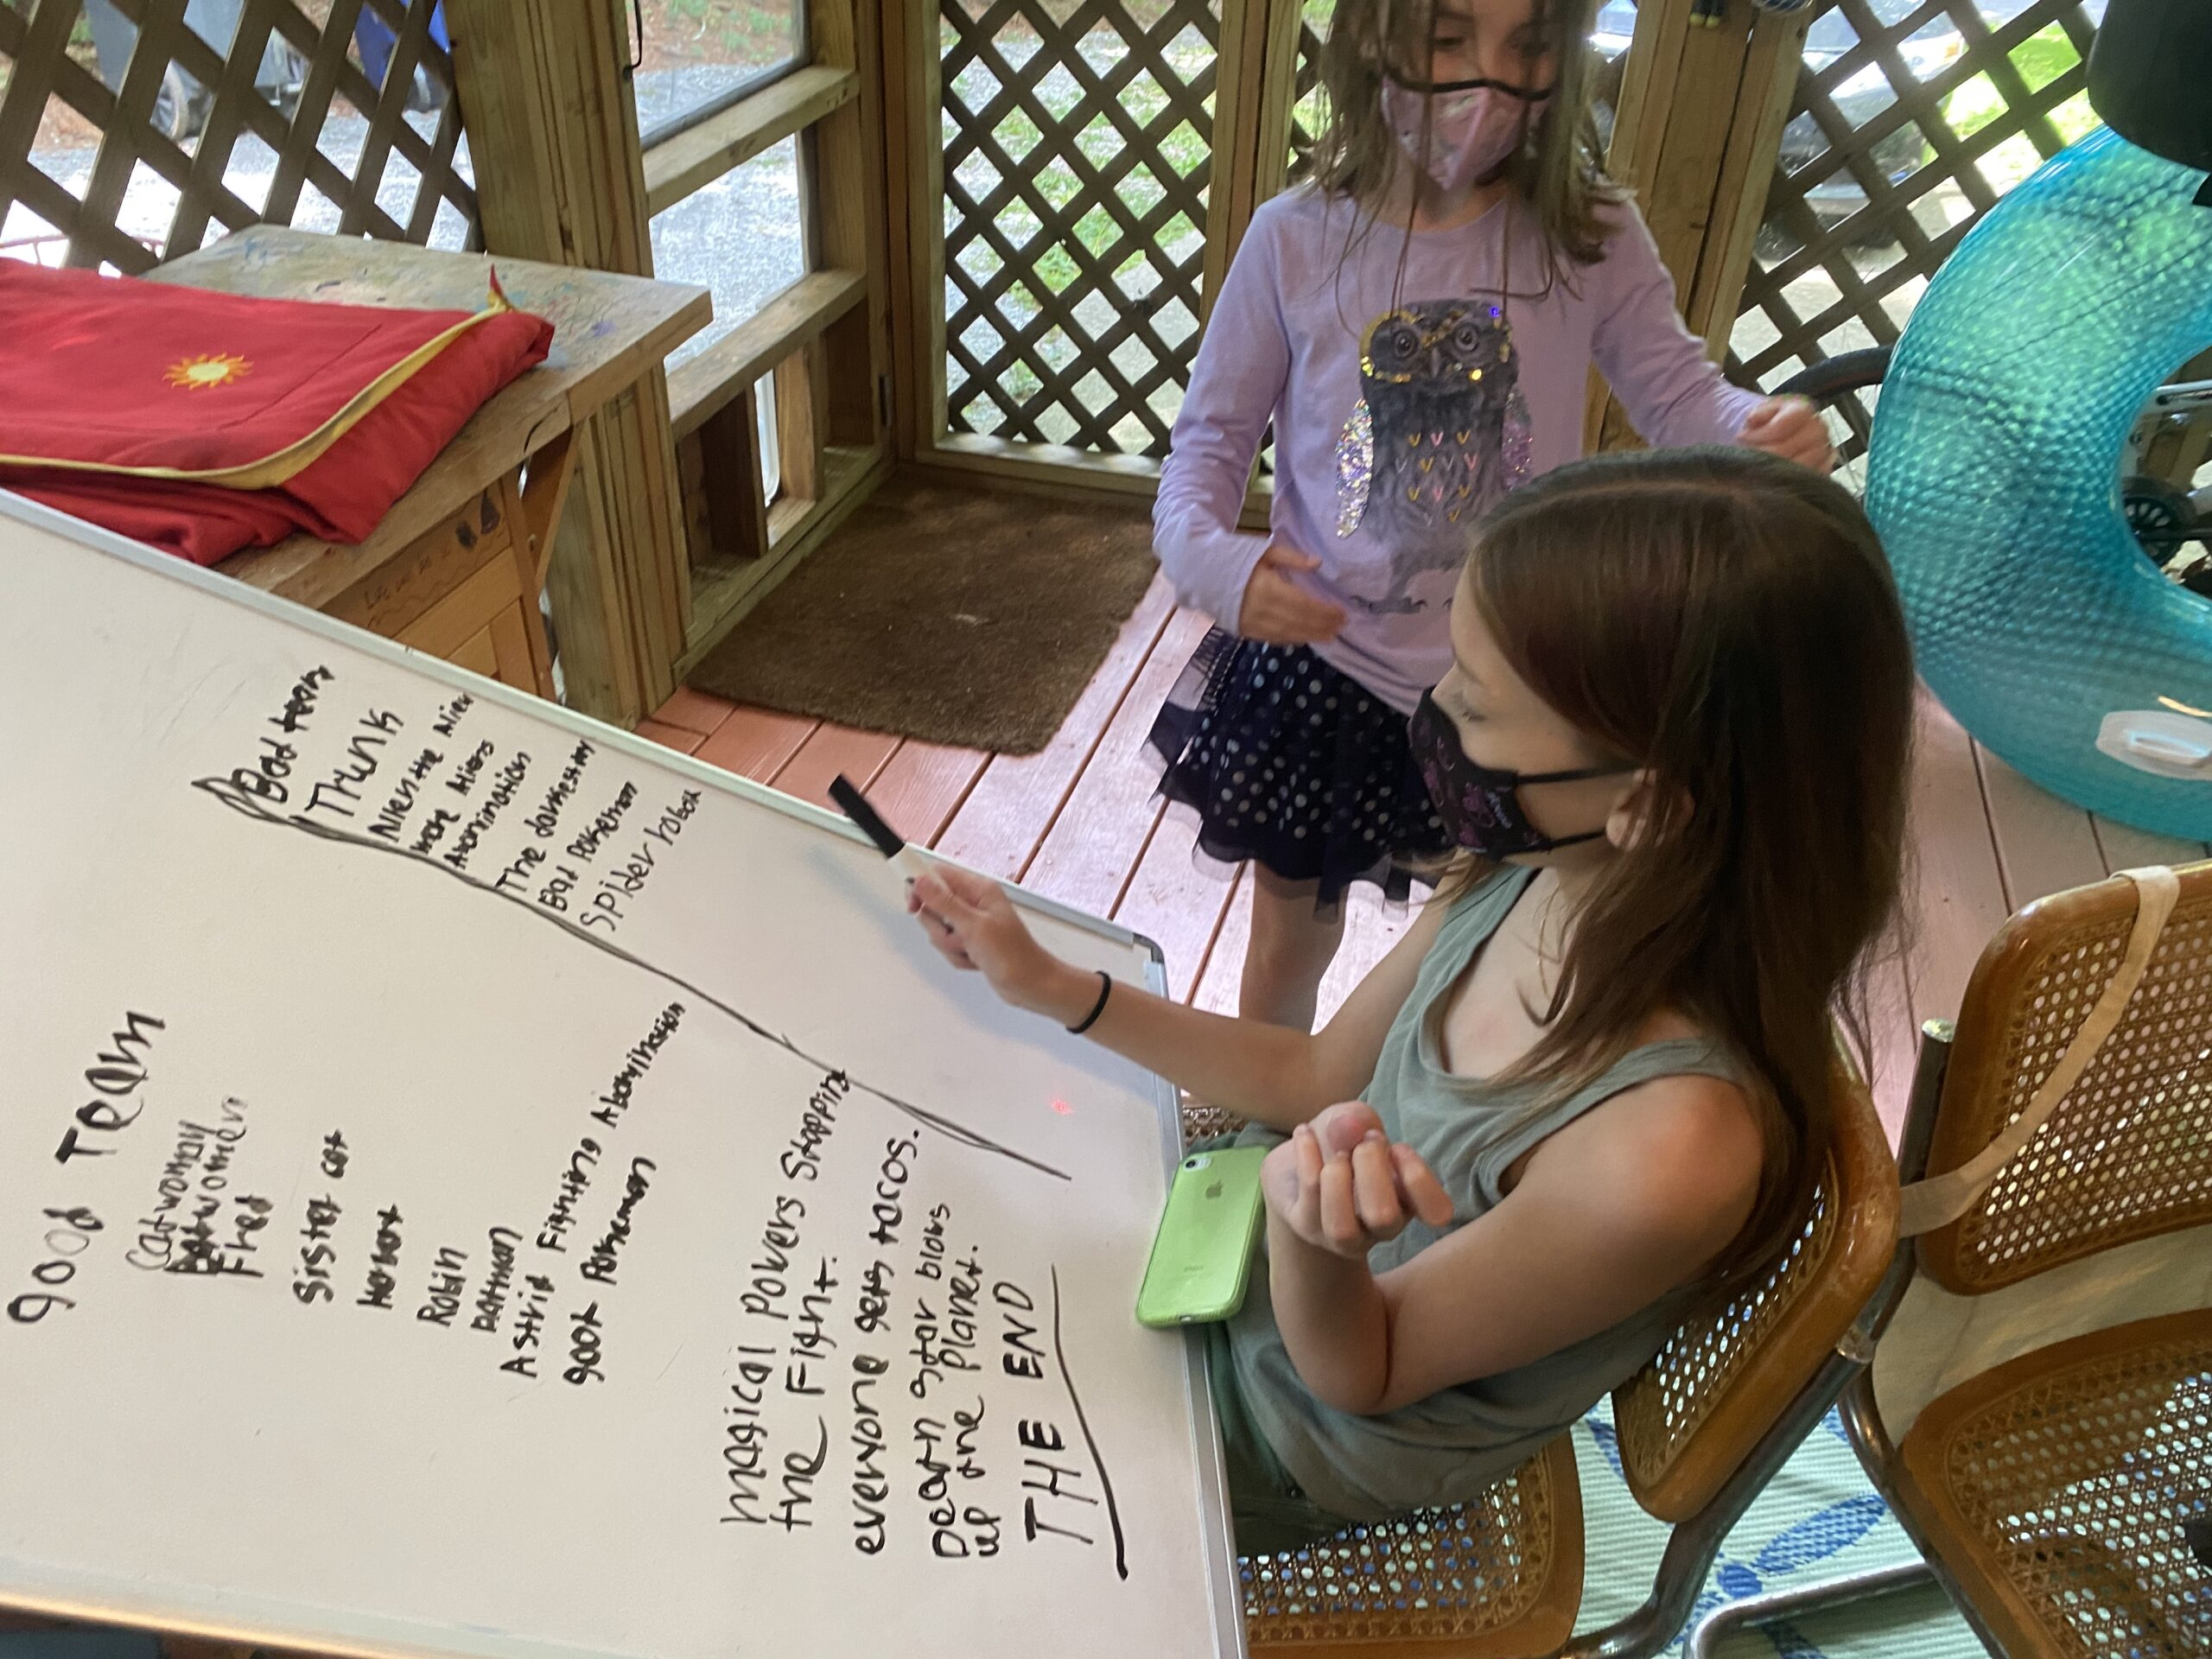 Creative Writing Session - Kids Write with Crystal